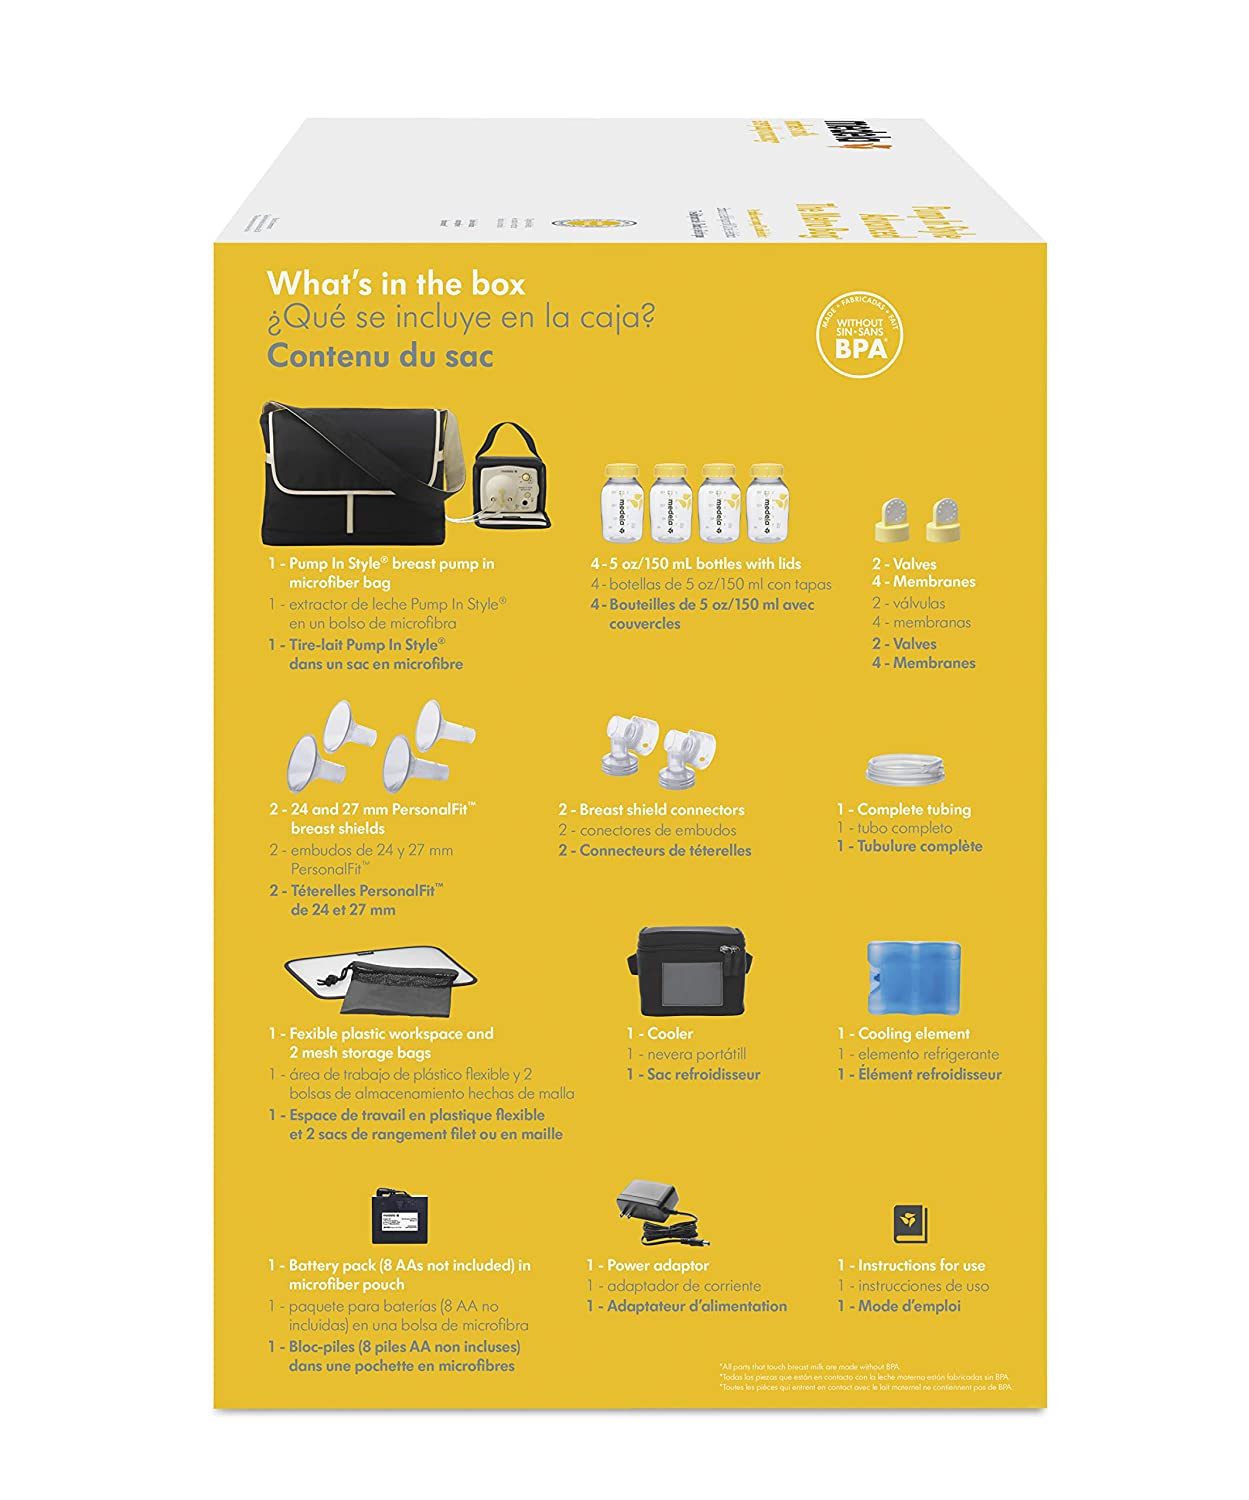 Medela Pump in Style Advanced Breast Pump with Metro Bag, Double Electric Breastpump, Portable Battery Pack, Power Supply Adapter 110v - 220v, ...